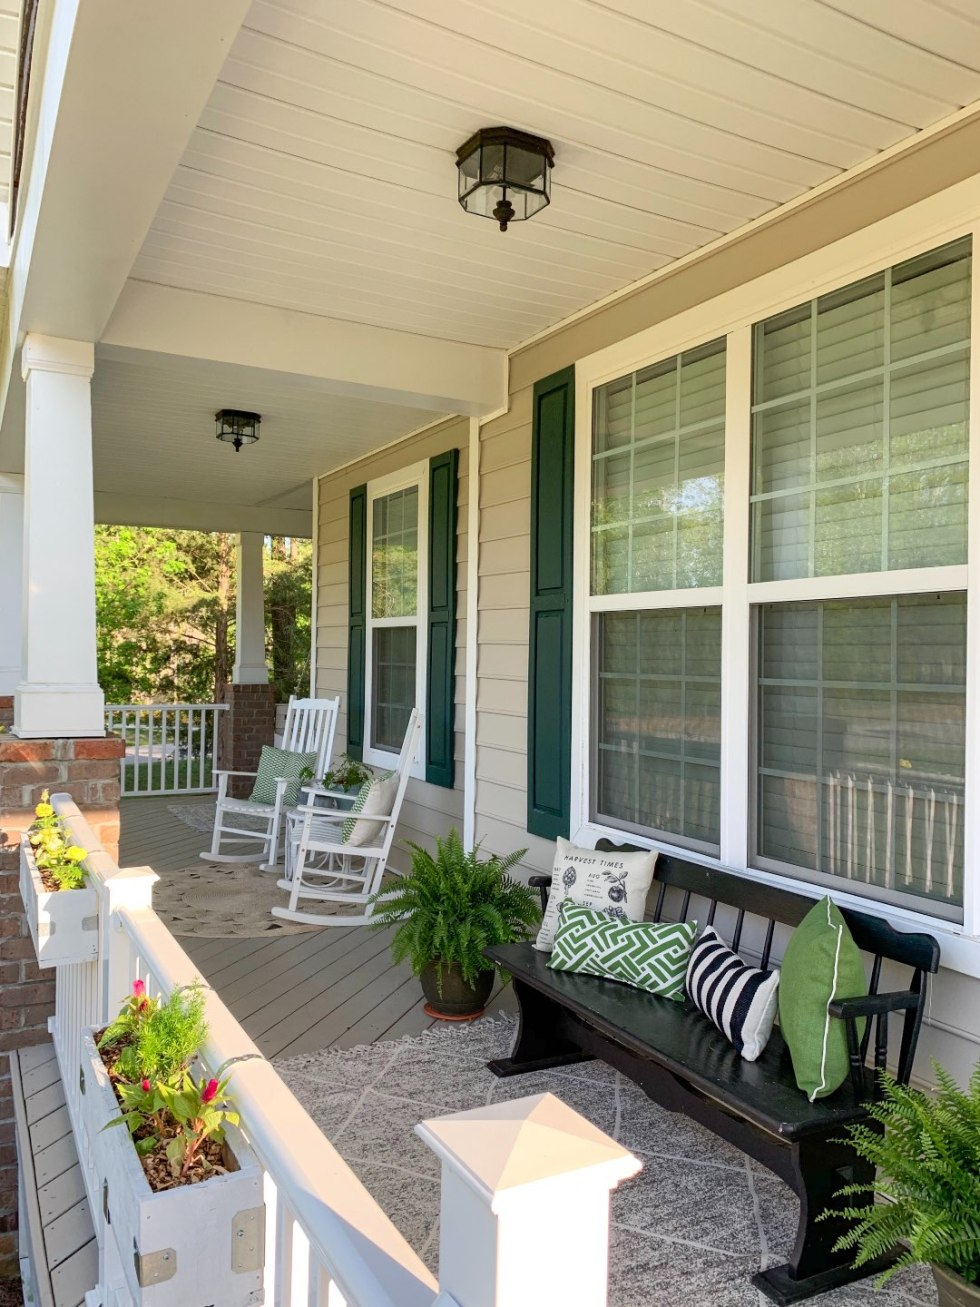 How to Update Your Front Porch Decor for the Season - I'm Fixin' To - @mbg0112  | Front Porch Decor for Spring featured by top US lifestyle blog, I'm Fixin' To: image of front porch furniture